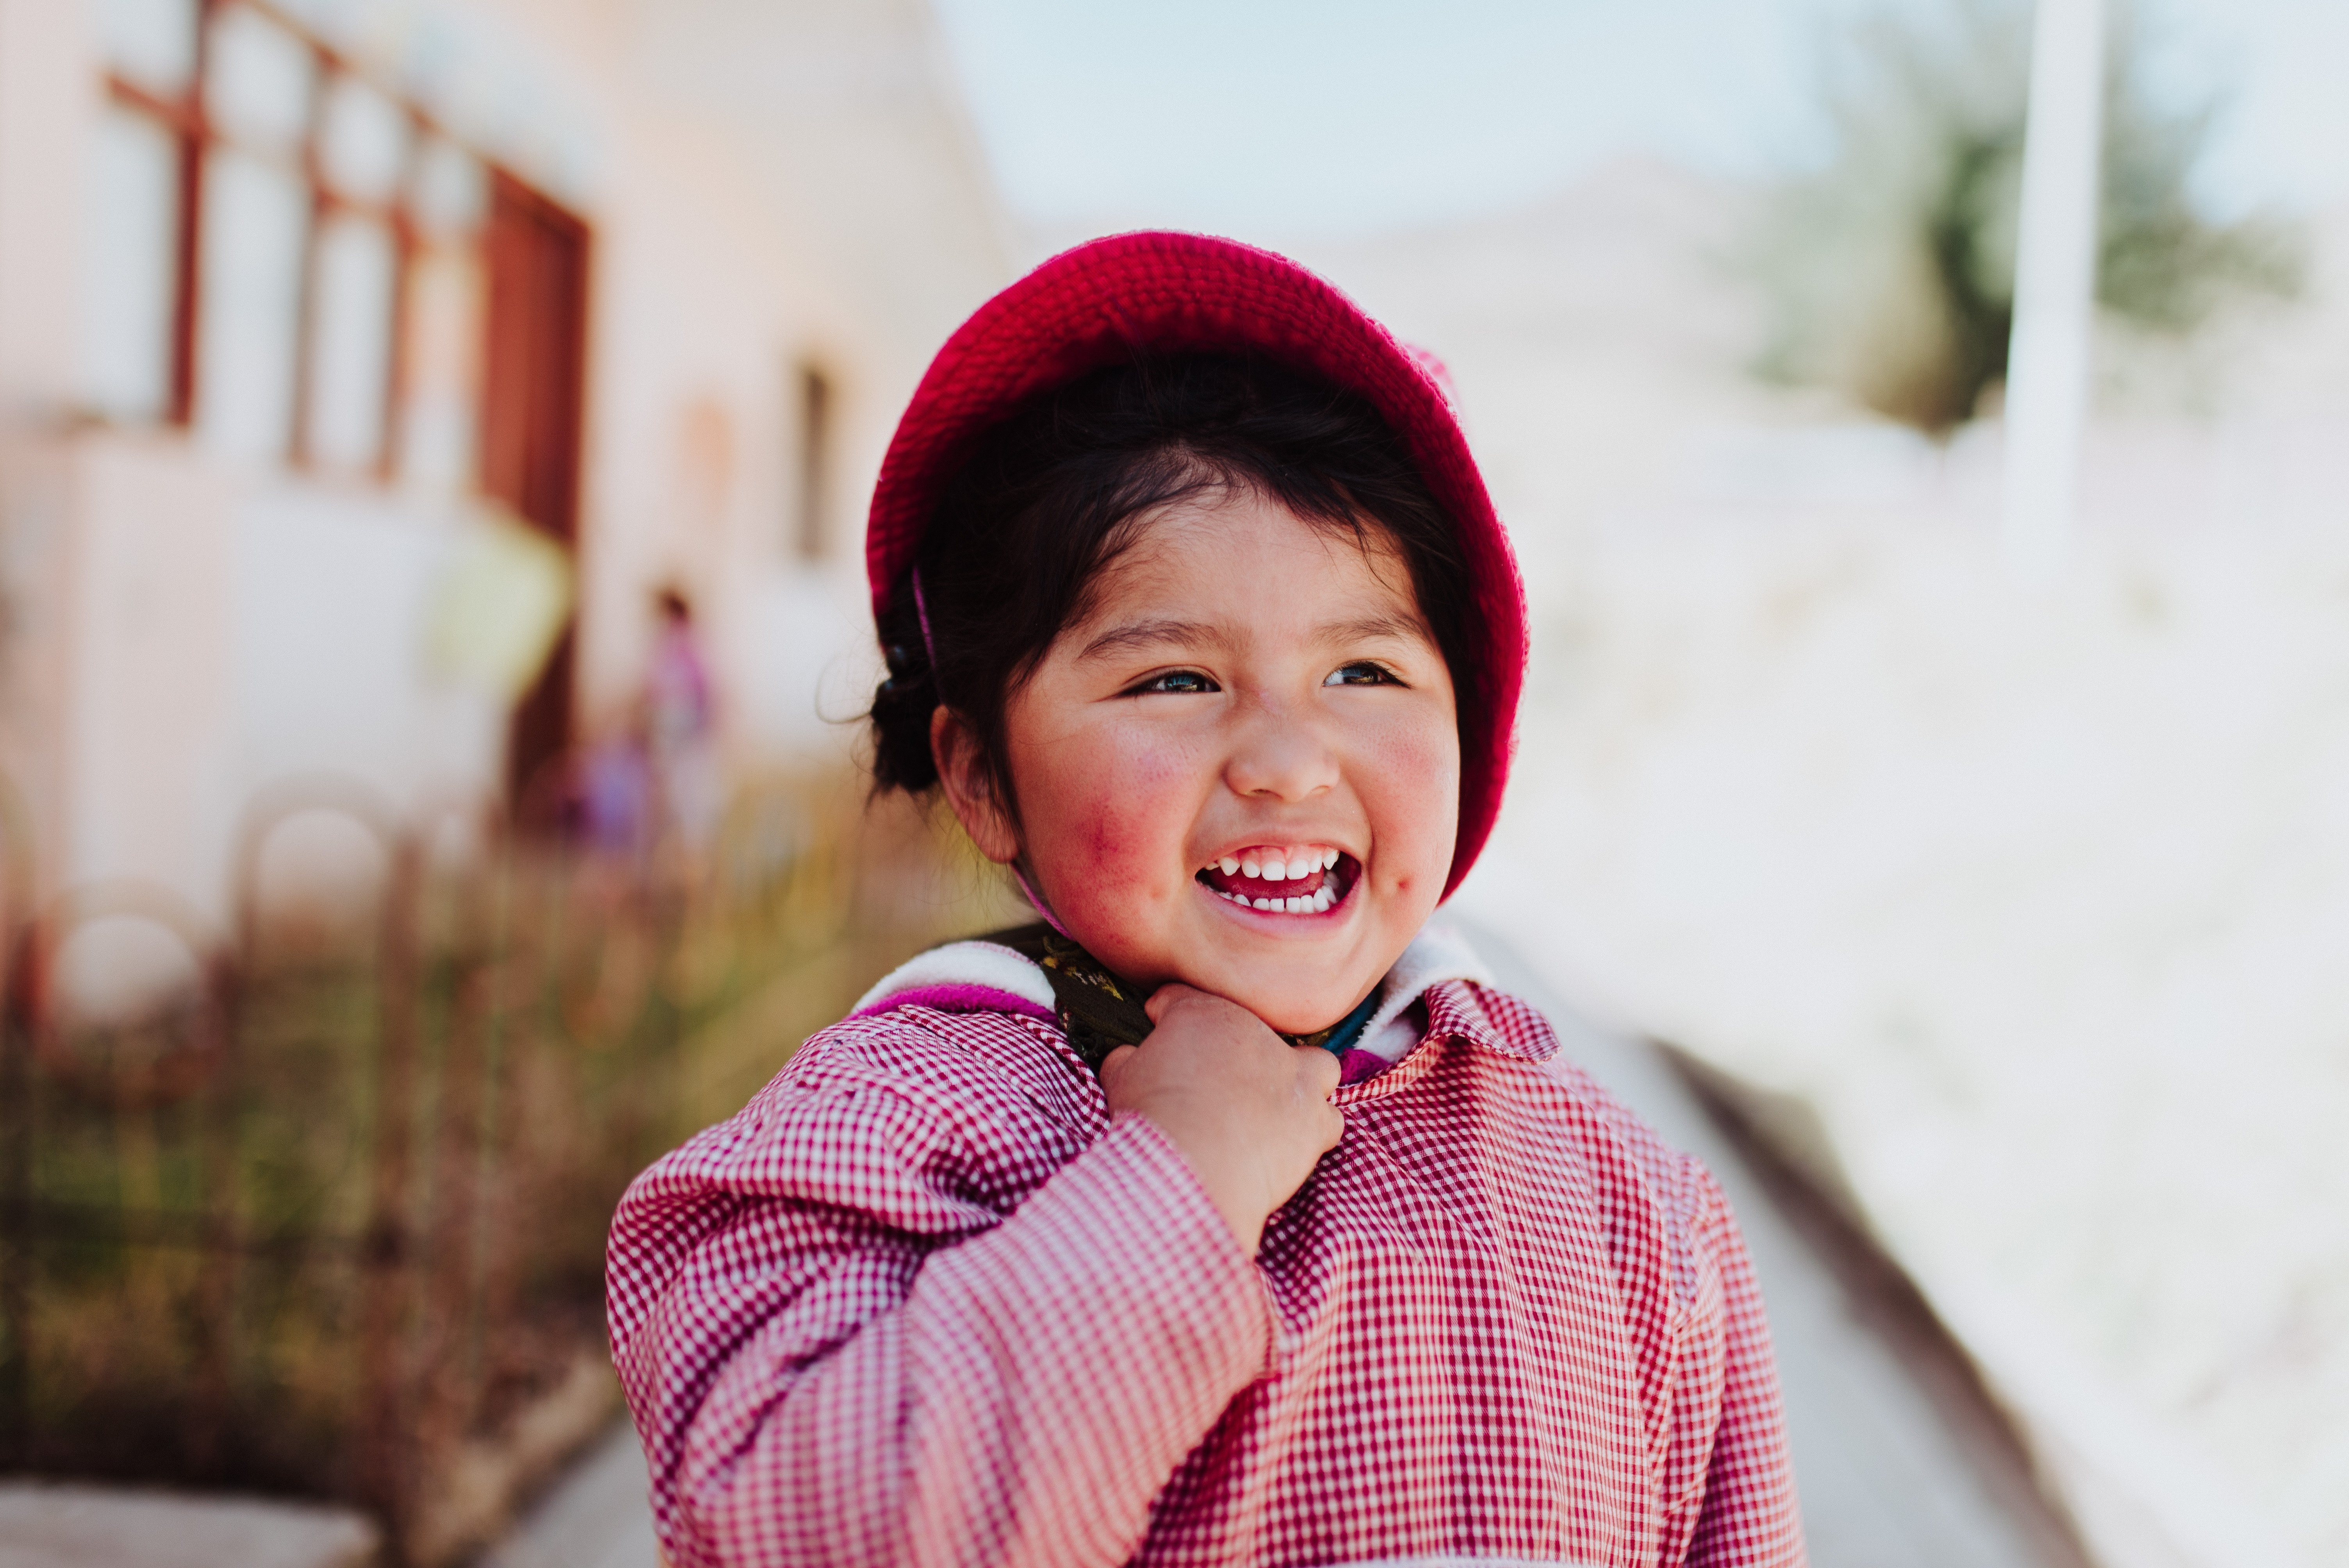 A little girl smiling. | Source: Unsplash